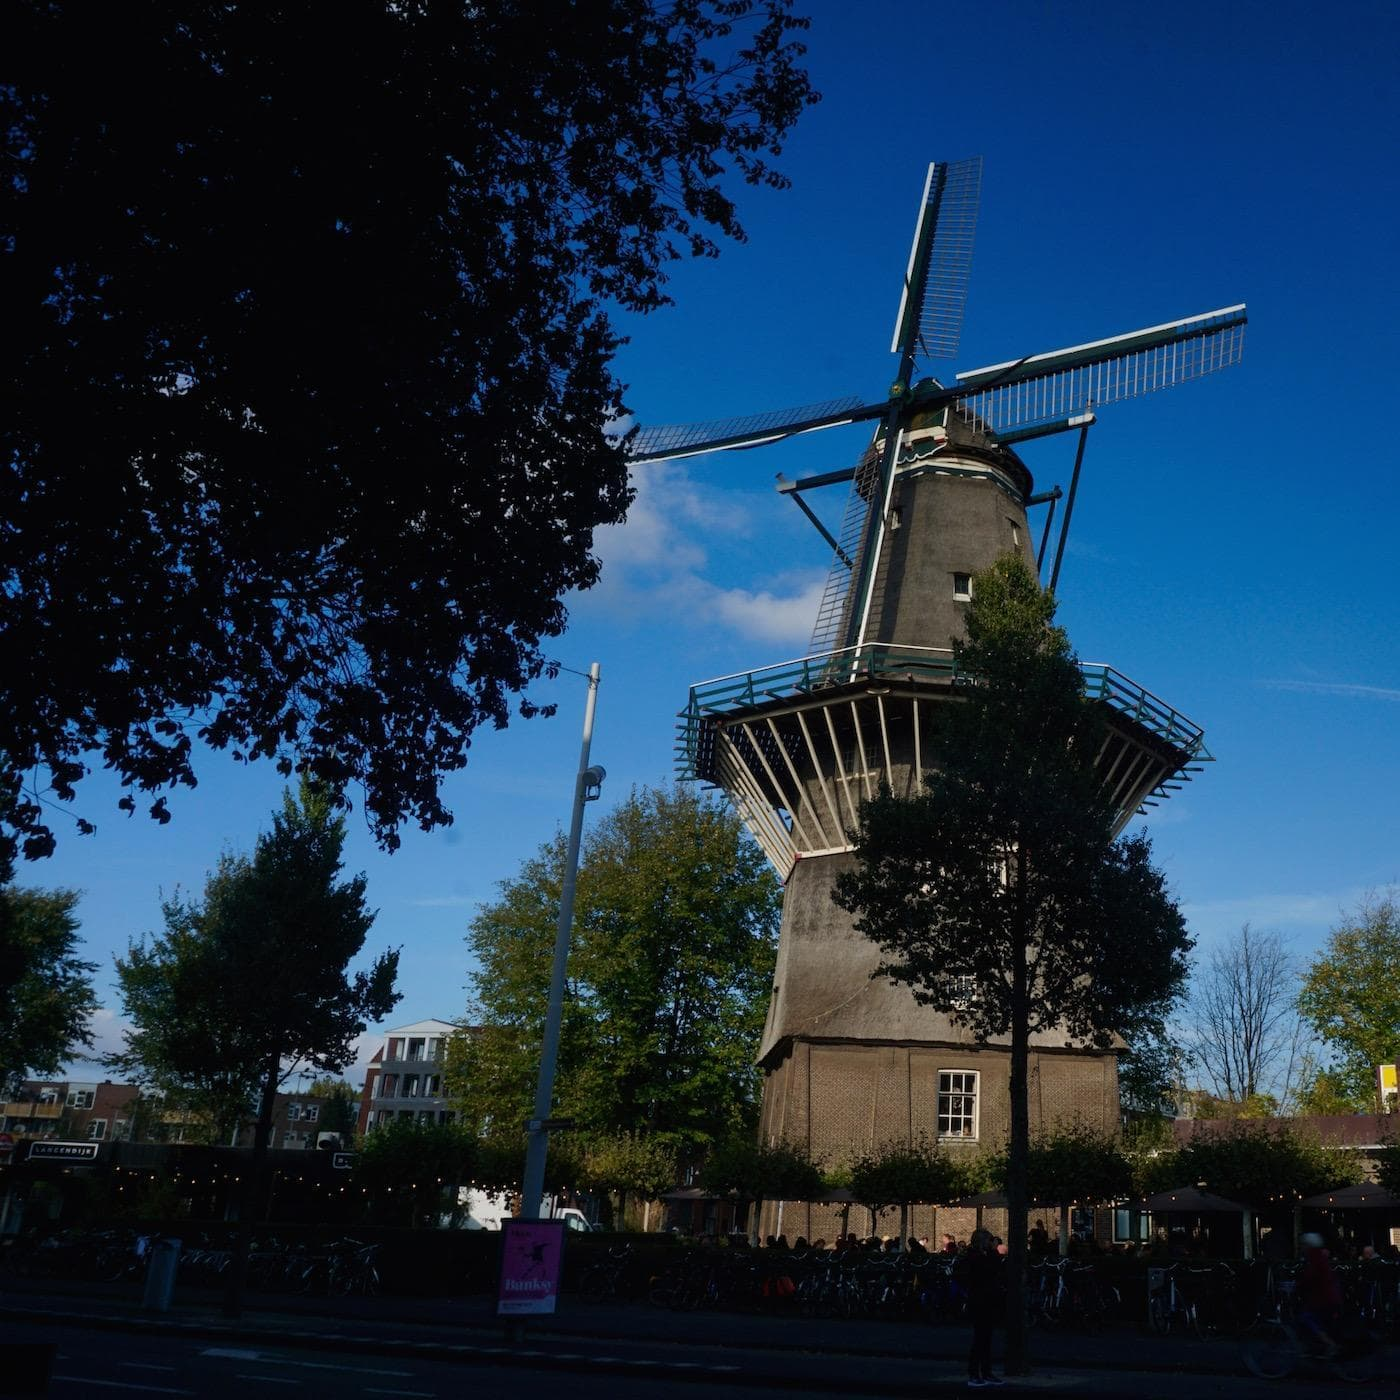 amsterdam-east-travel-hidden-gems-things-to-do-walking-tour-history-friends-couples-groups-activities